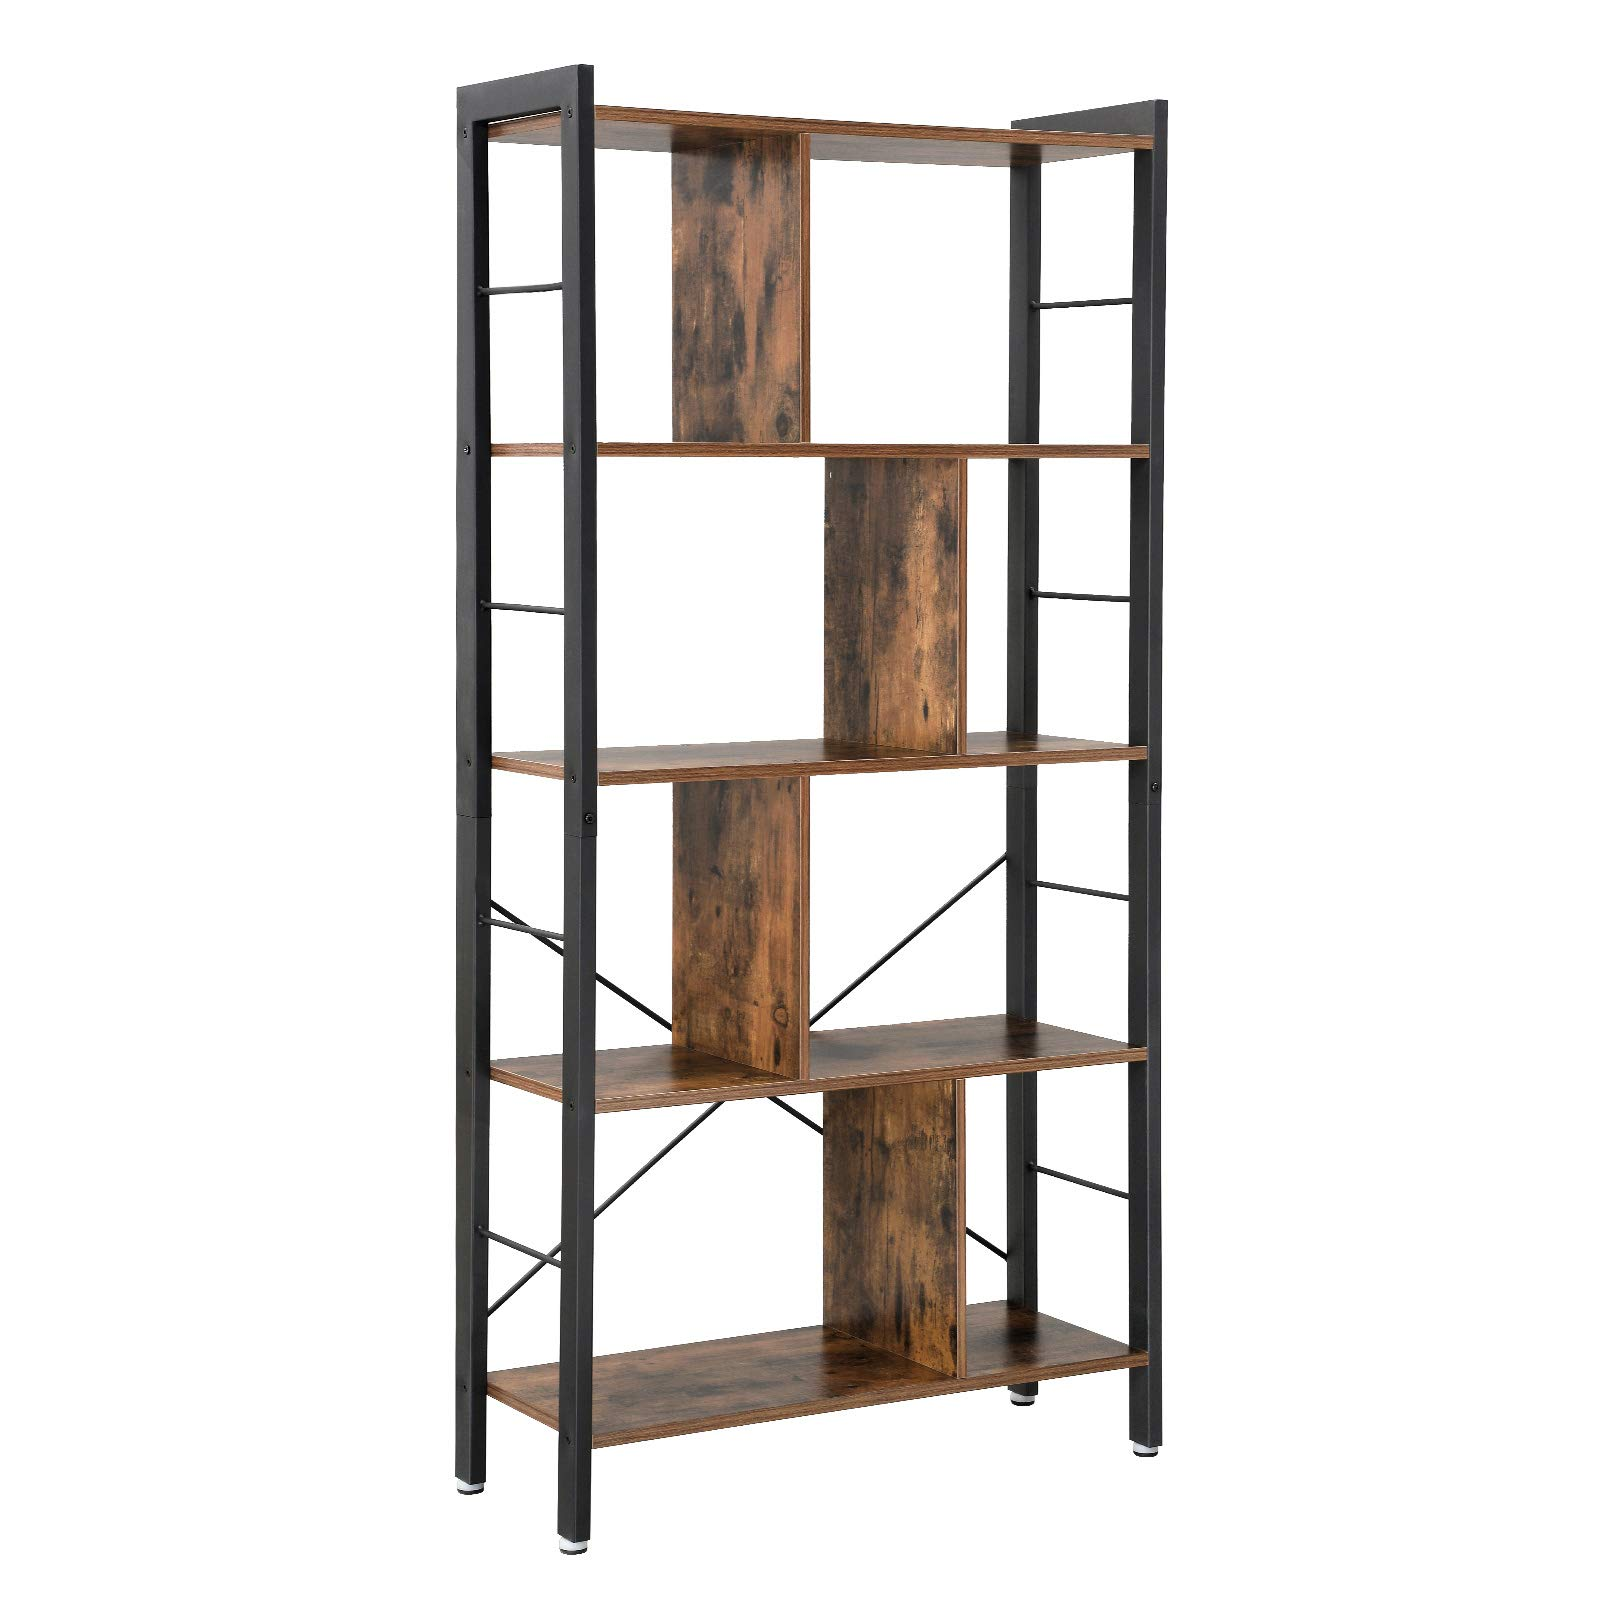 VASAGLE Bookcase, 4 Tier Industrial Bookshelf, Floor Standing Storage Rack in Living Room Office Study, Large Storage Space, Simple Assembly, Stable Iron Frame, Rustic ULBC12BX